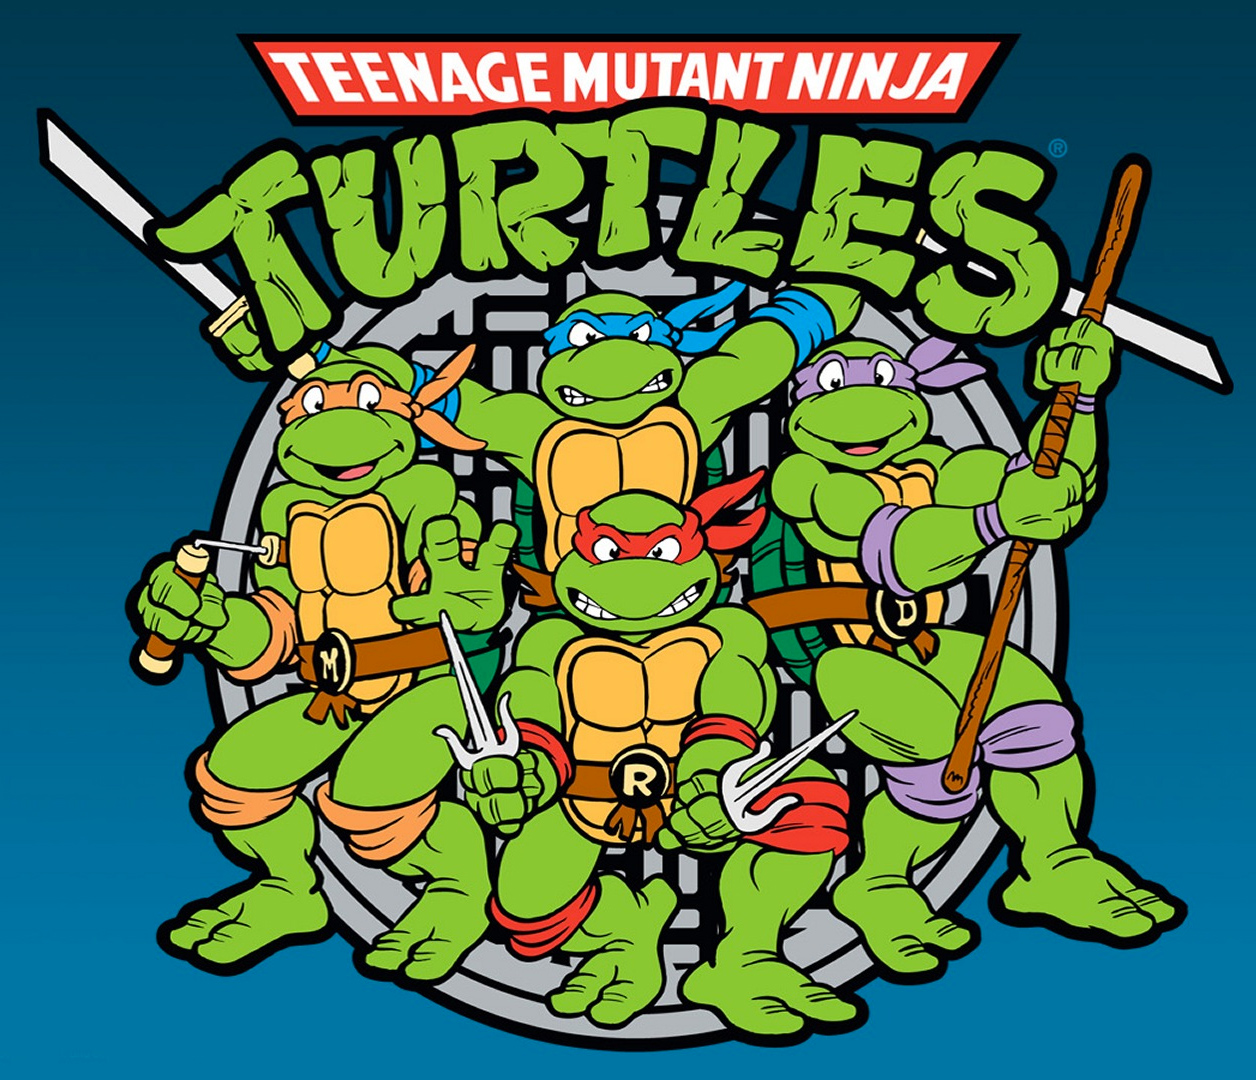 Teenage mutant ninja turtles the cartoon.